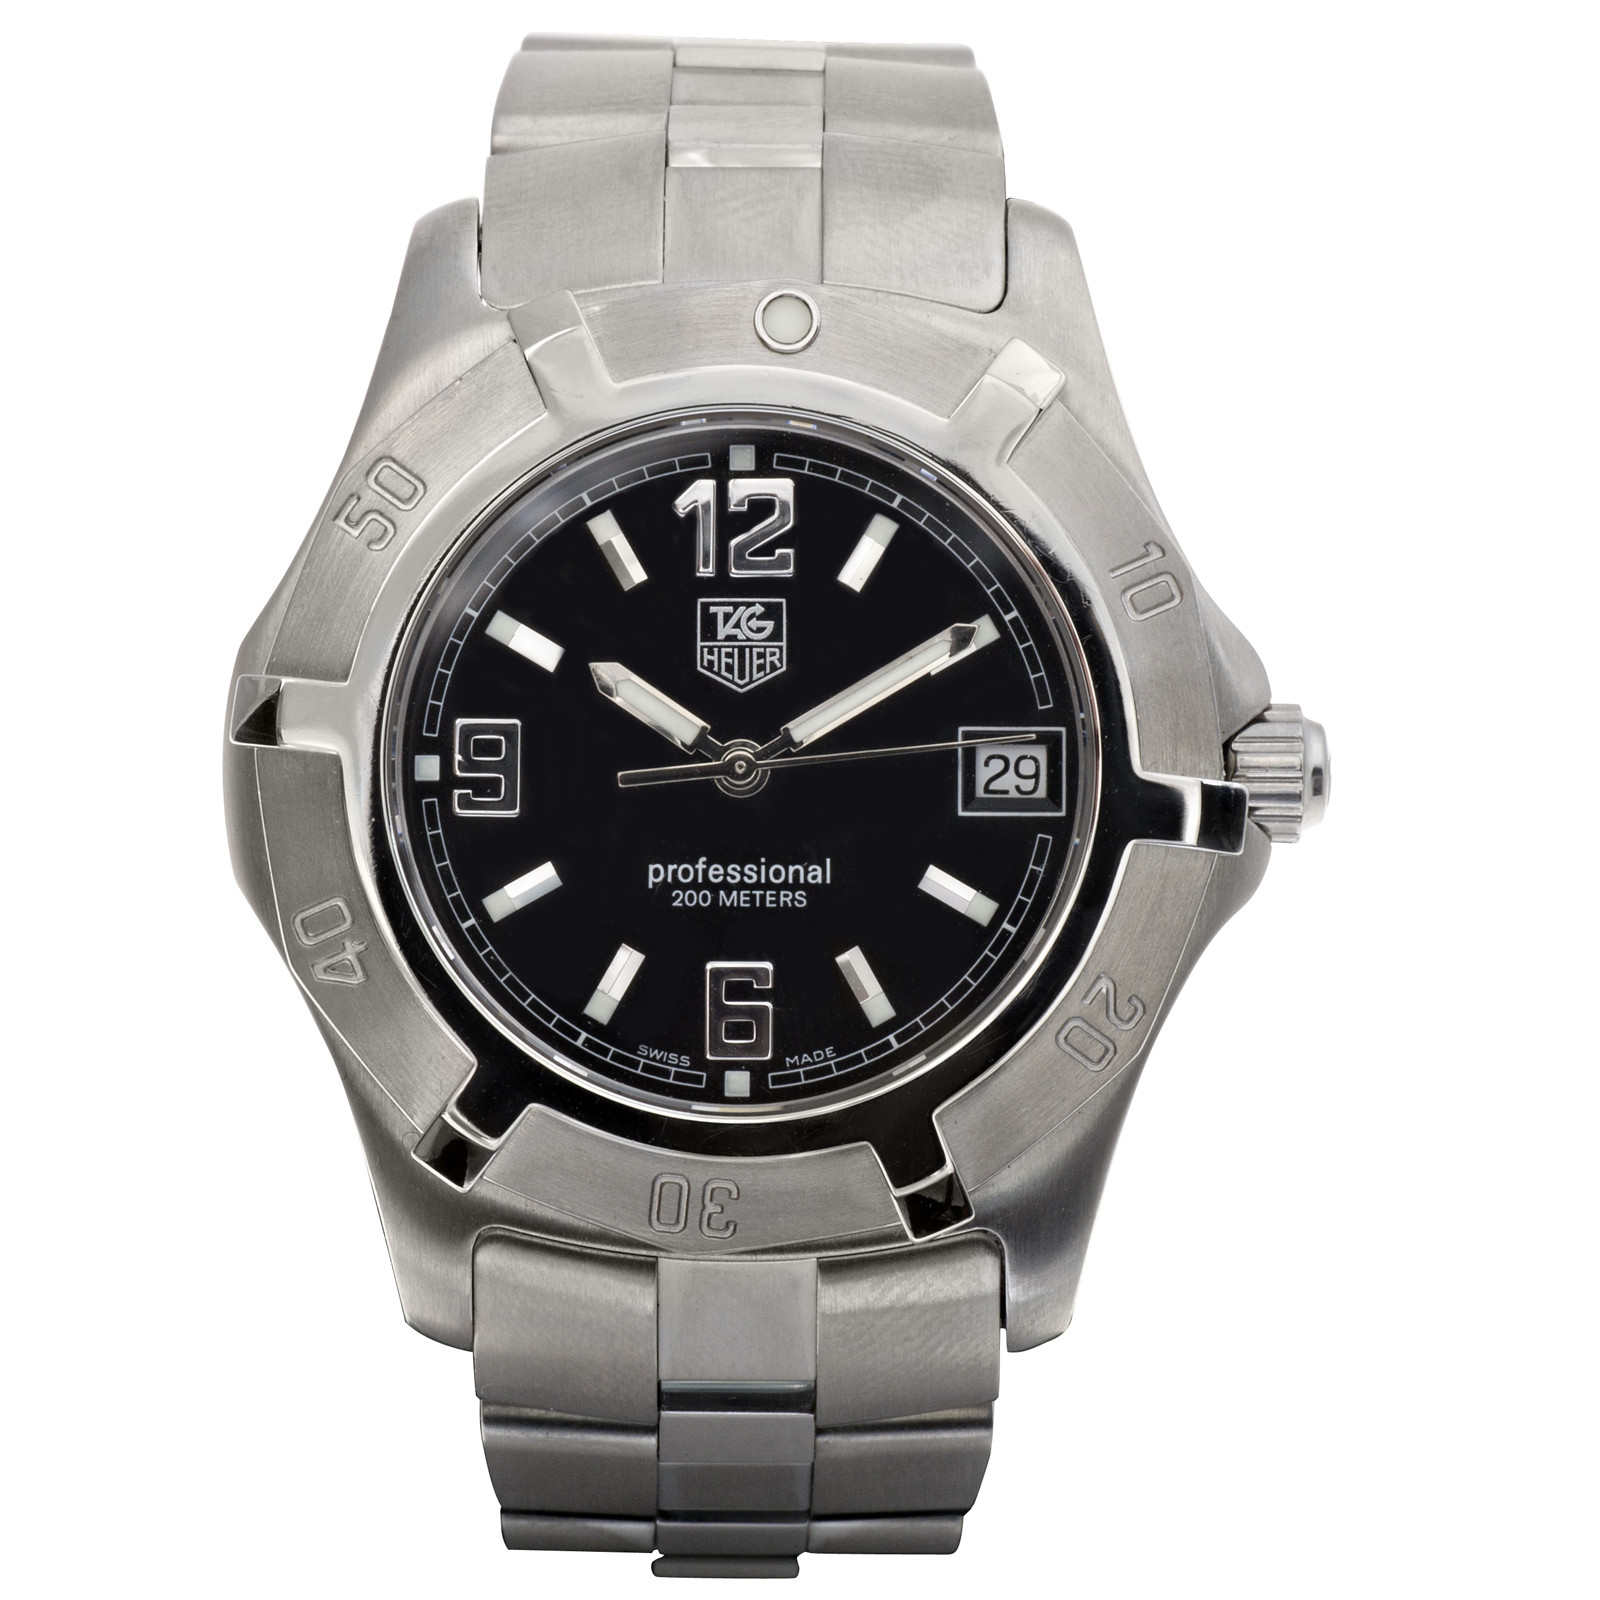 Preowned Tag Heuer Professional Watch